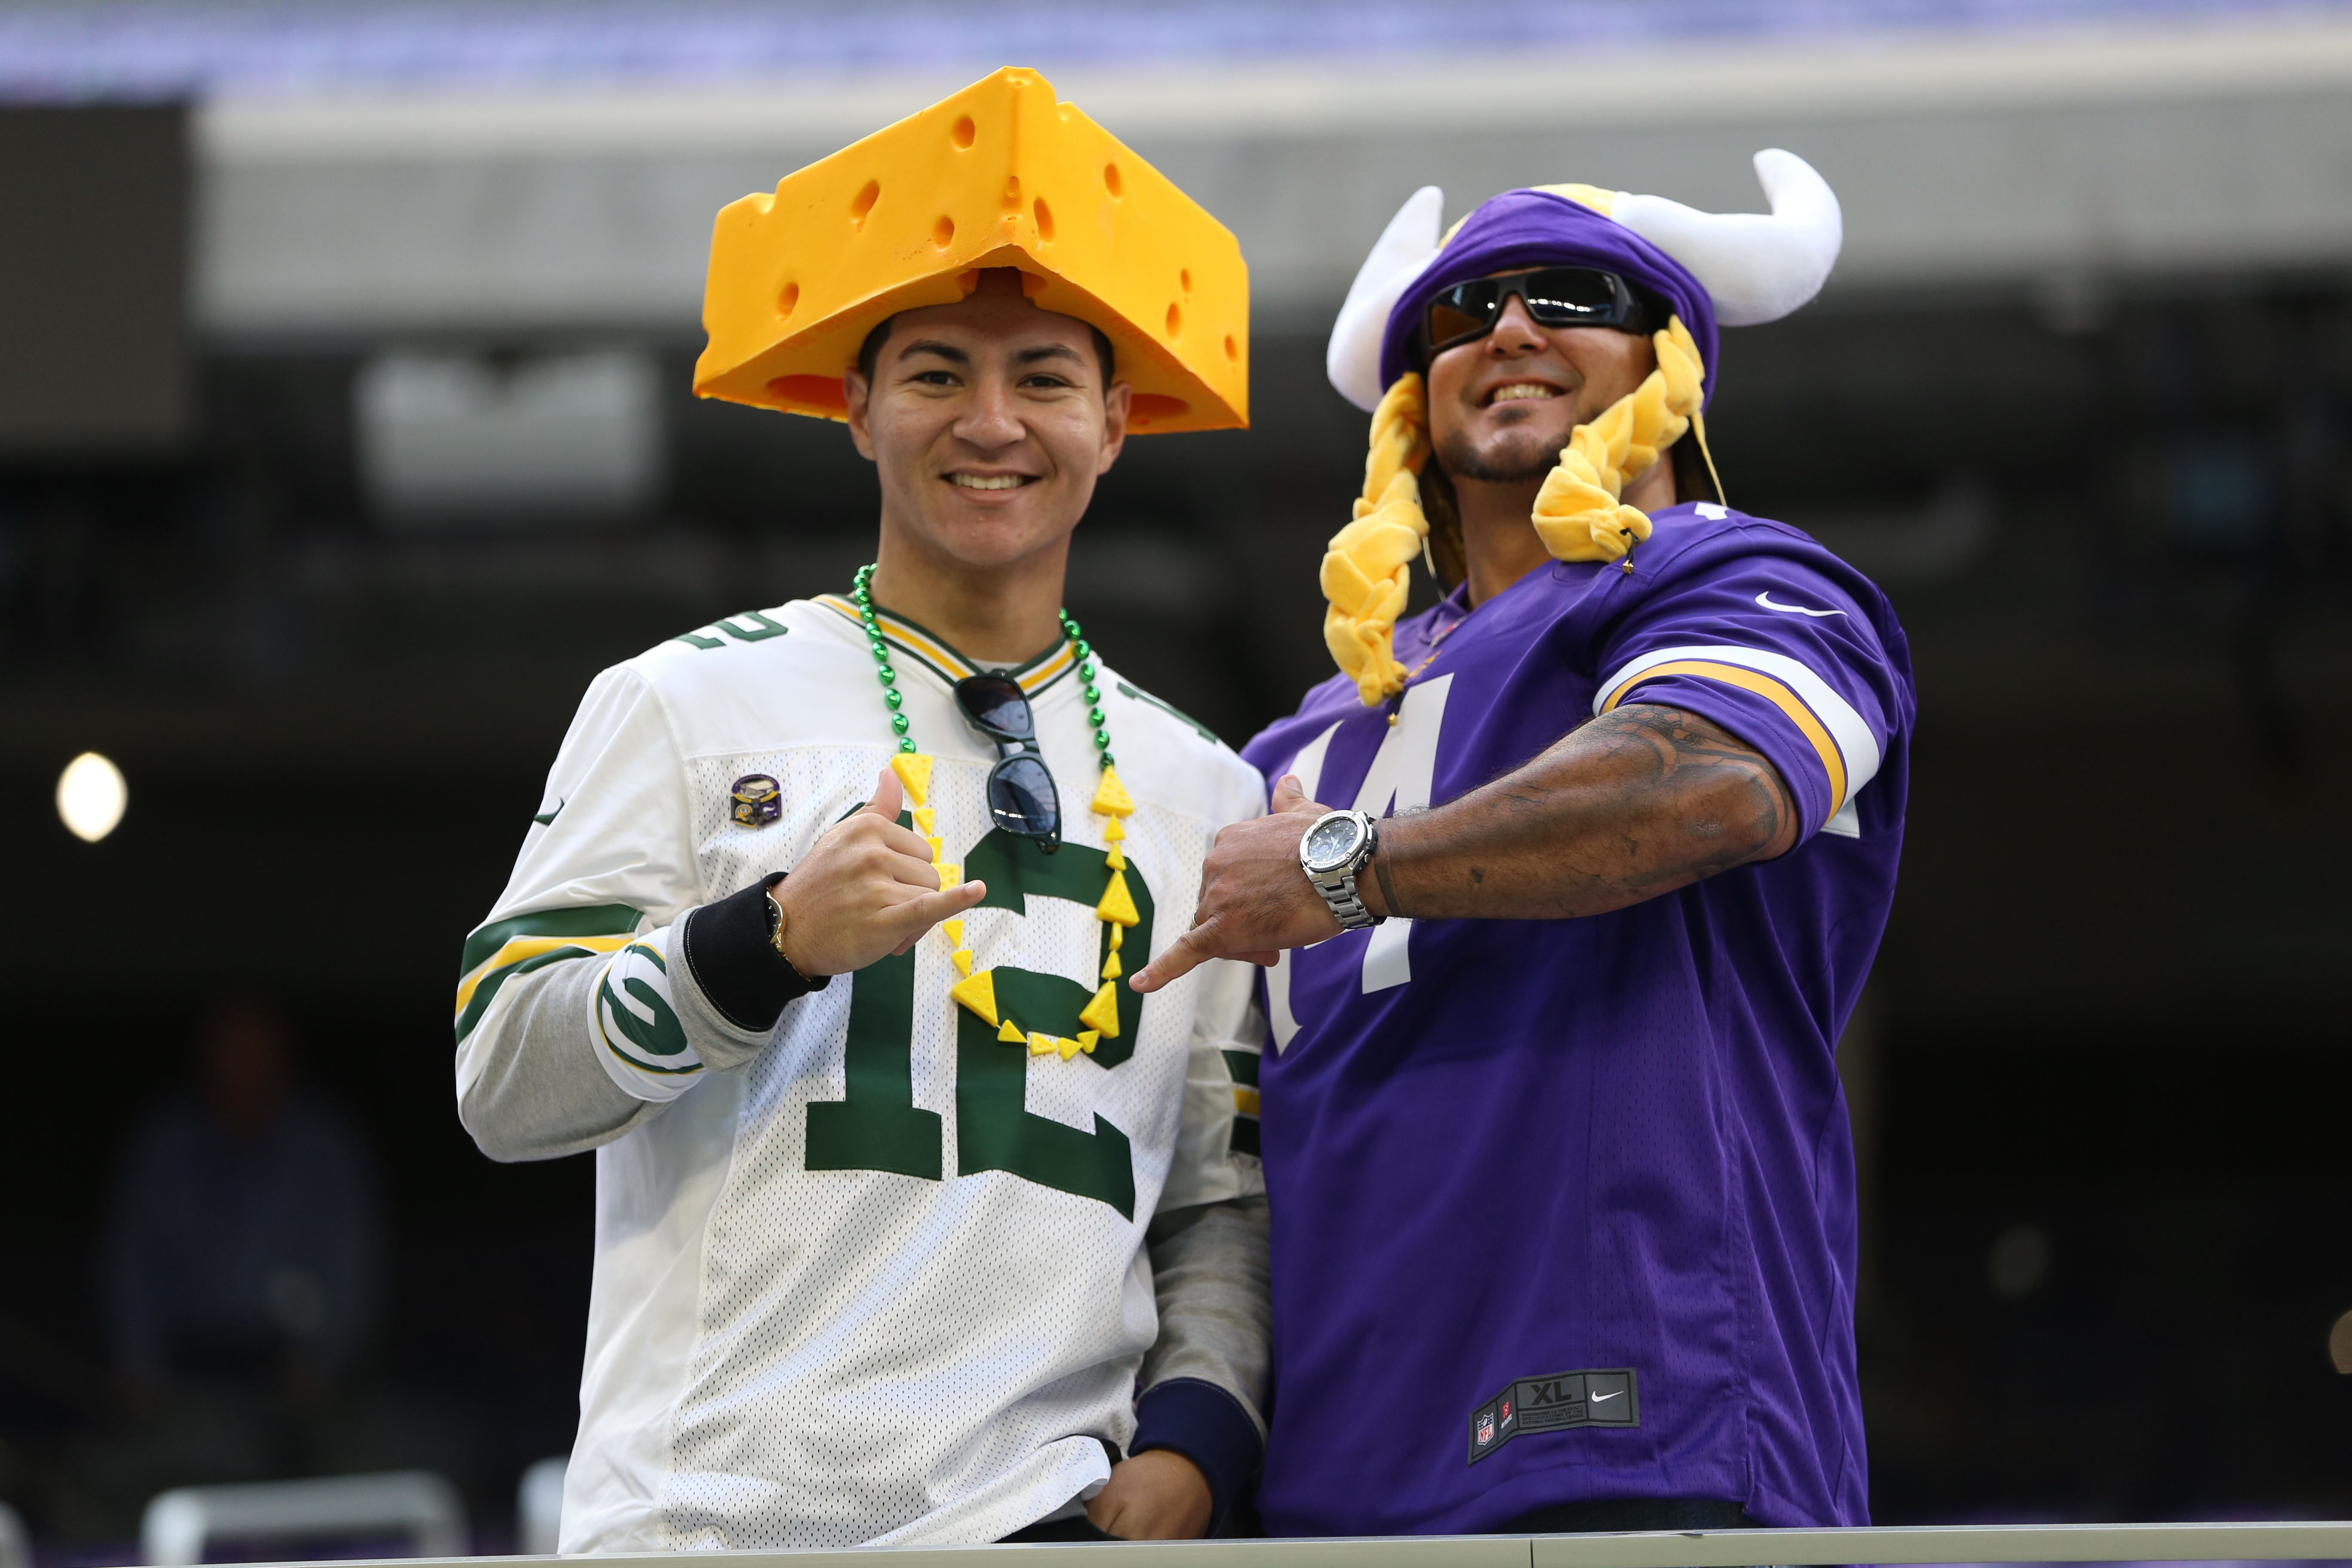 The Green Bay Packers And Minnesota Vikings Have A Stories Rivalry But It S The Fans That Make These Matchups So F Minnesota Vikings Vikings Green Bay Packers